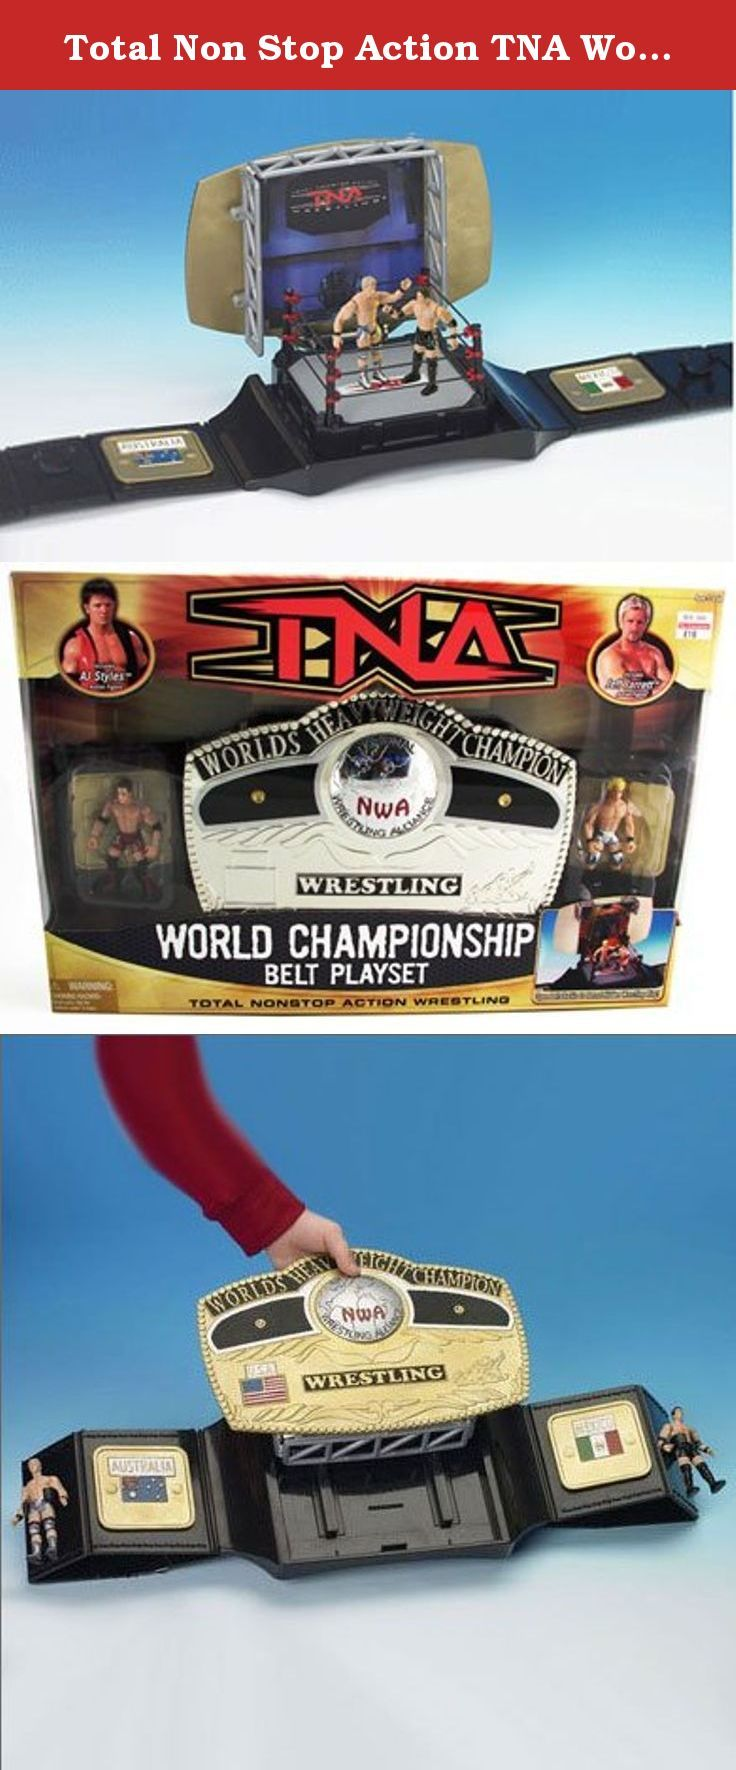 """Total Non Stop Action TNA World Wrestling Championship Belt Playset - Includes AJ Styles and Jeff Jarrett 3"""" Mini Figures. The NWA World Heavyweight Championship is the most prestigious and longest recognized World title in professional wrestling. Sanctioned by the National Wrestling Alliance, it has been defended around the world and has been held by some of the greatest wrestlers of all t ime. Product Dimensions: 1.8 pounds."""